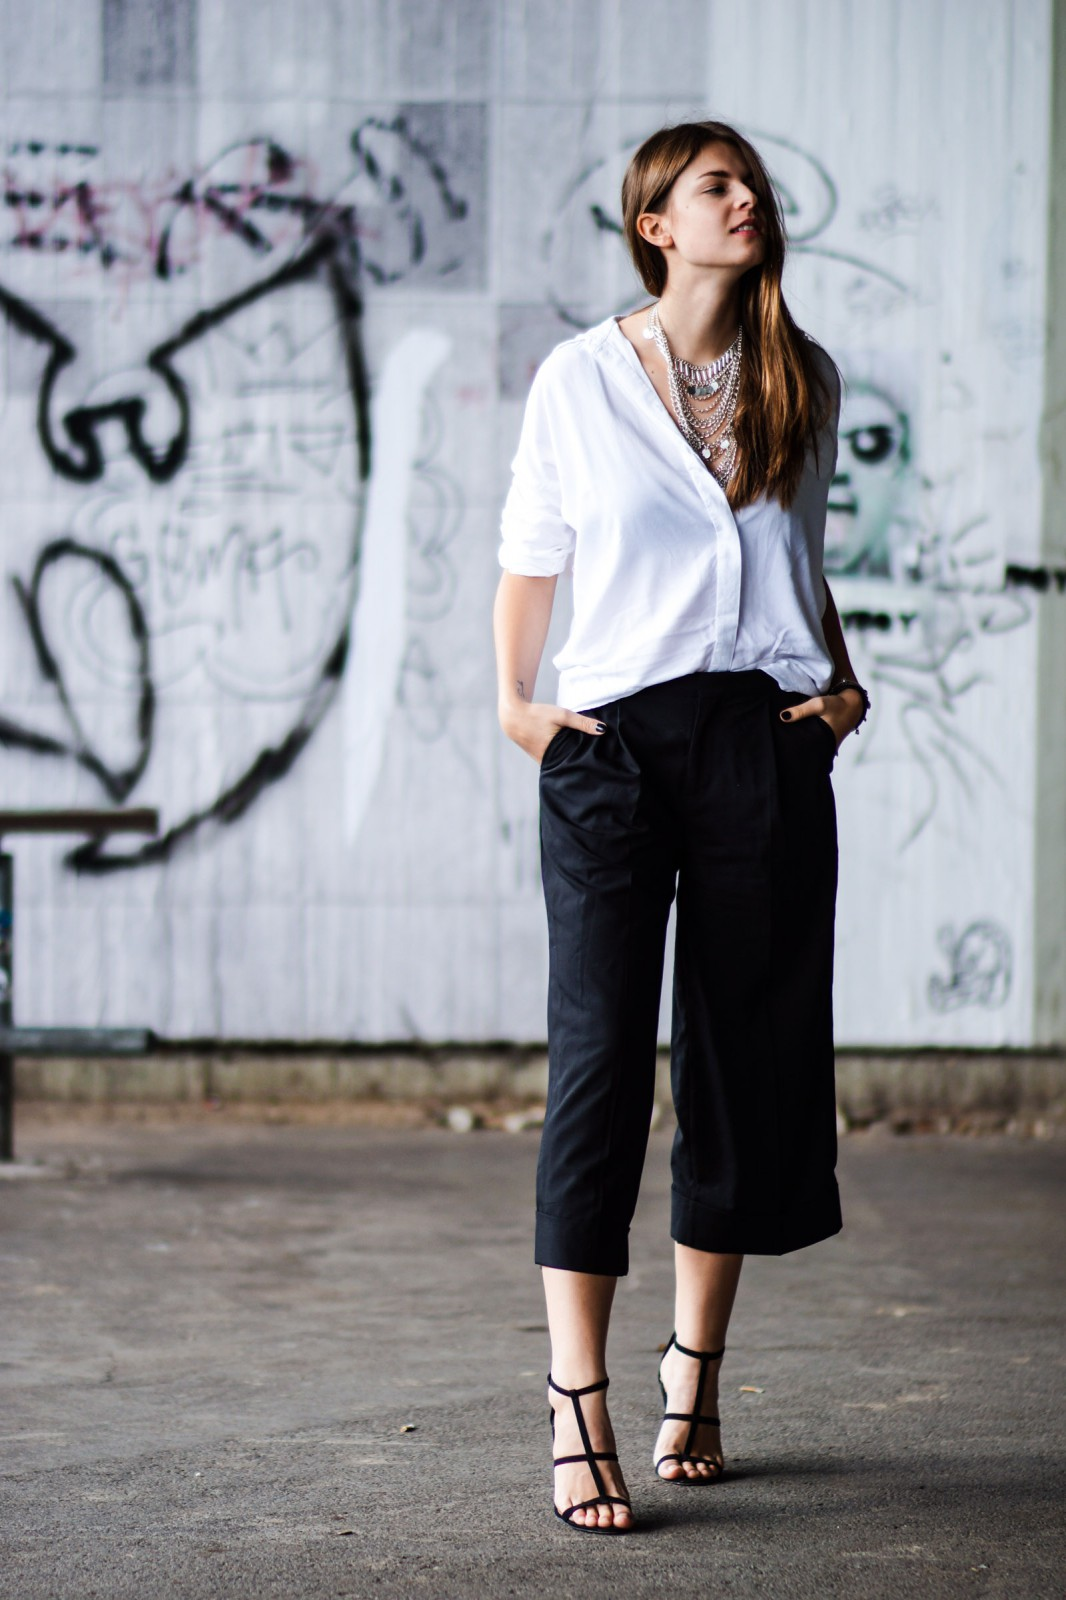 2ND Day Culottes